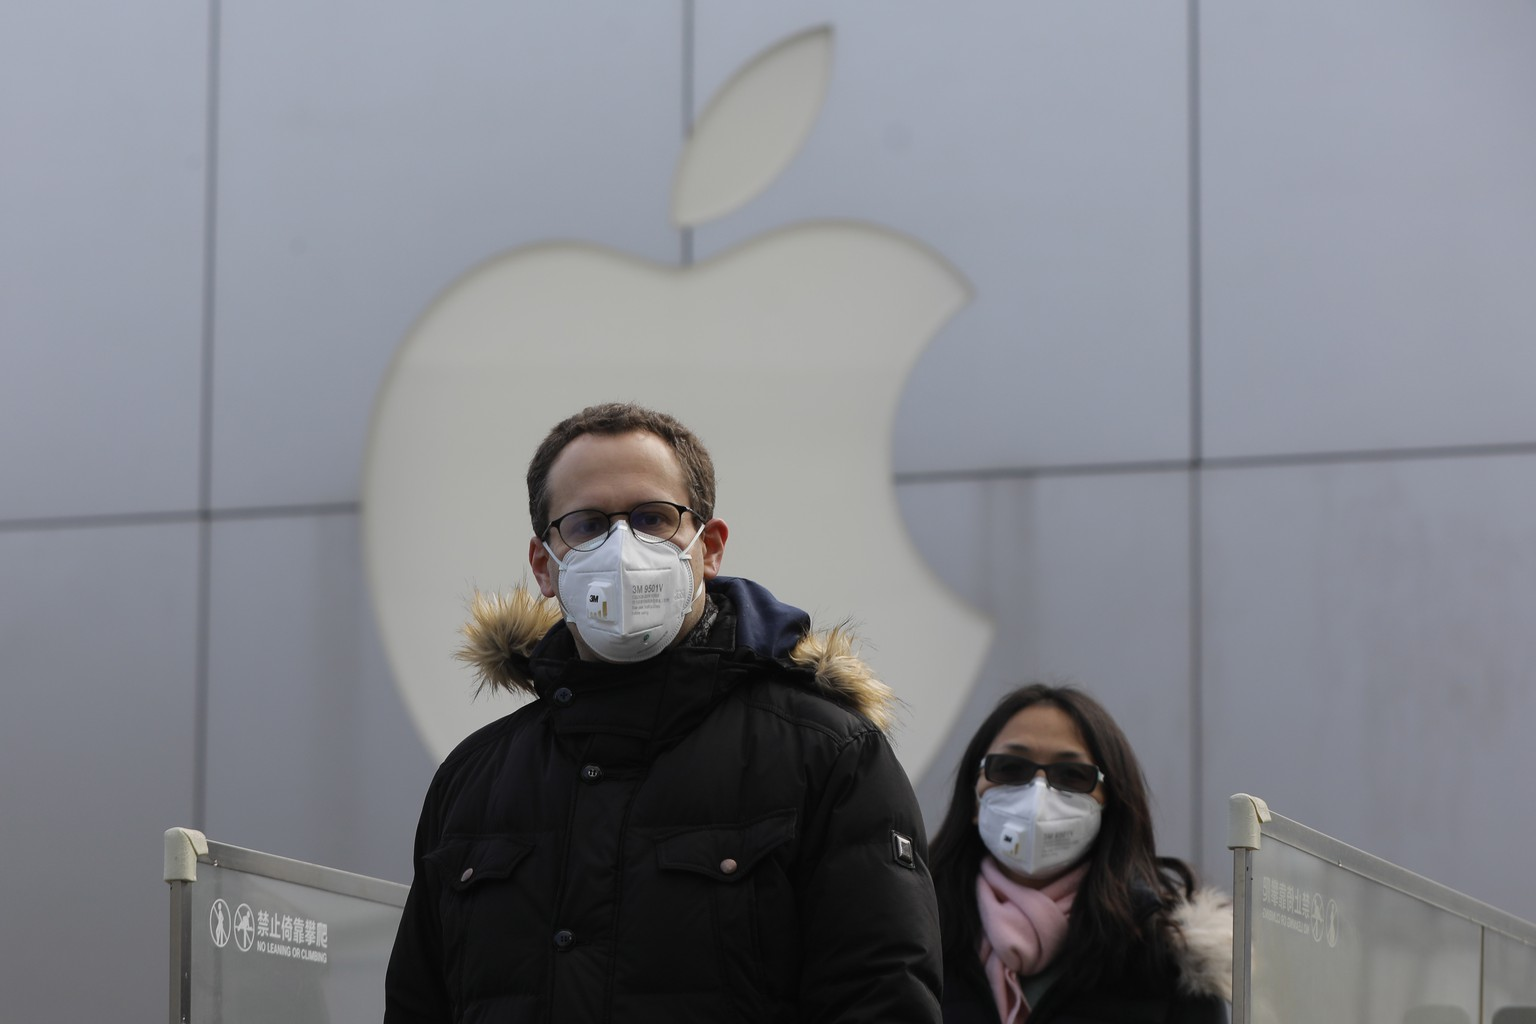 epaselect epa08186957 People wear masks as they walk past a closed Apple store at Sanlitun in Beijing, China, 02 February 2020. Apple announced the closure of its stores, corporate offices and contact centers on mainland China until 09 February, due to the novel coronavirus outbreak in the nation.  EPA/WU HONG